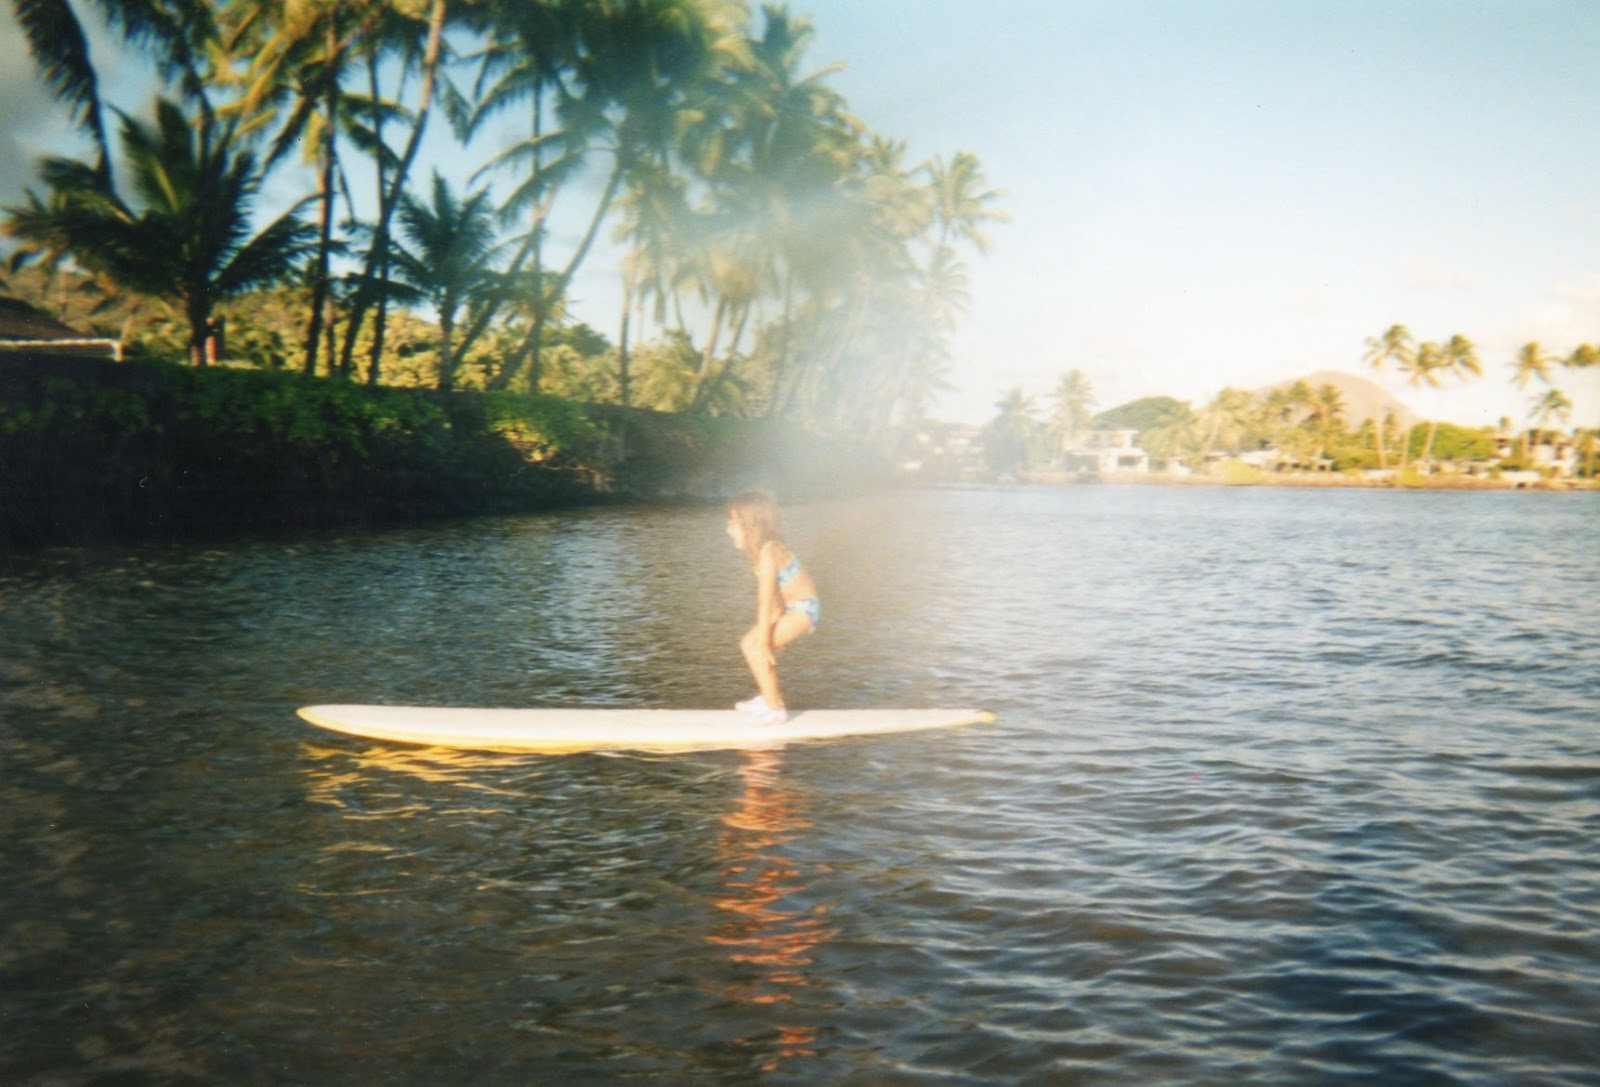 Marissa Miller, learning to surf at a young age at home in Oahu, Hawaii. Photo provided by Marissa Miller's family.